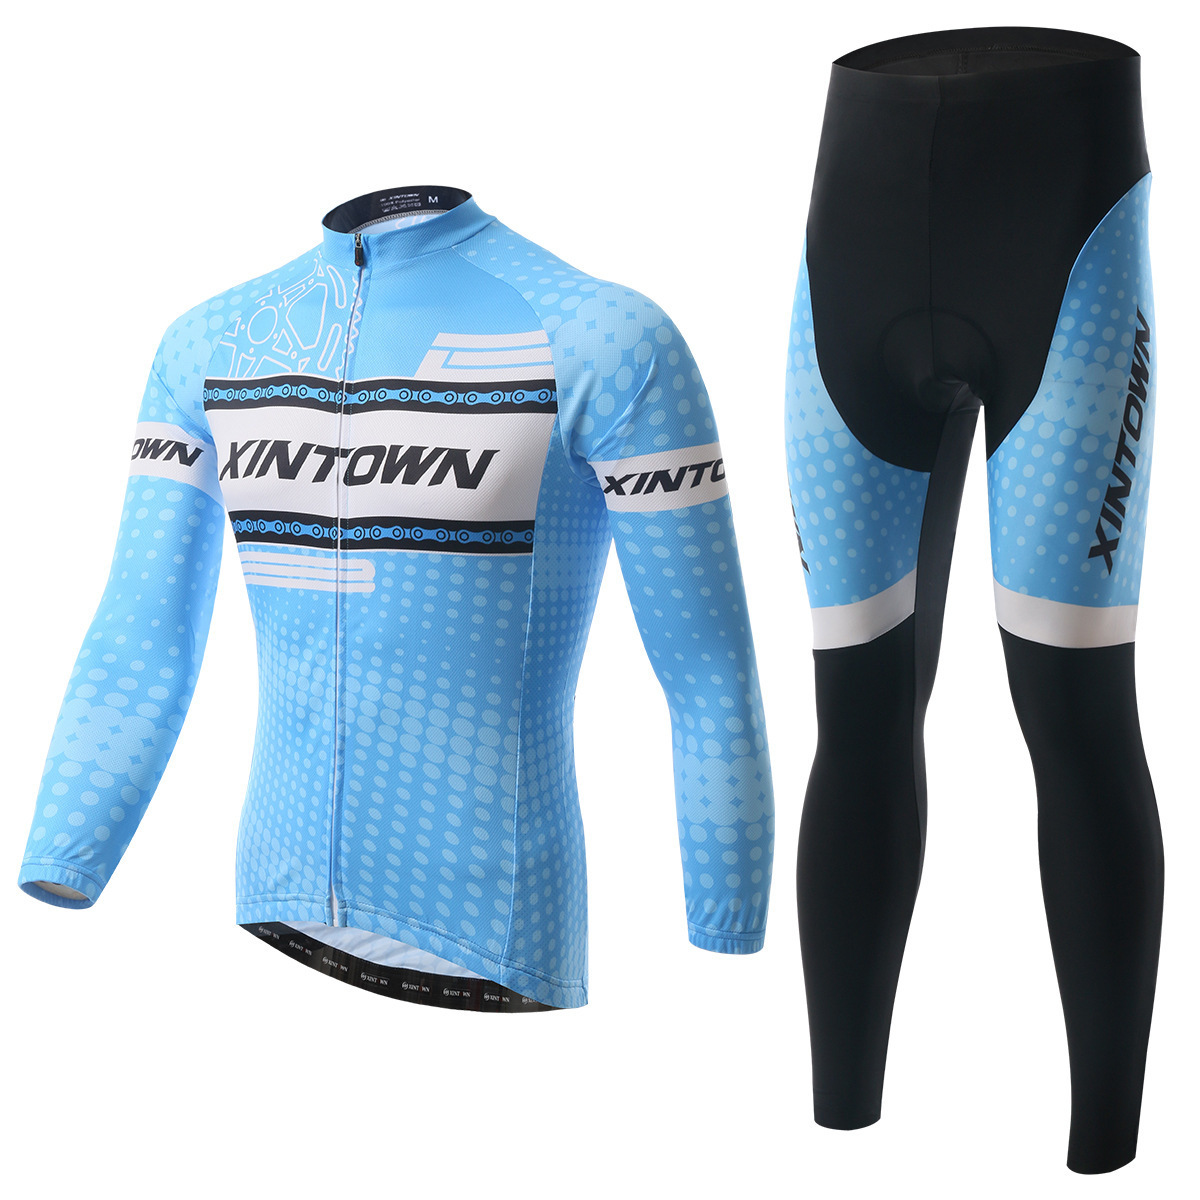 XINTOWN Cycling Jersey Set Long Sleeve Bicycle Clothing Maillot Ciclismo Bike Clothes Cycling Set For Men Spring Jersey Sets veobike winter thermal brand pro team cycling jersey set long sleeve bicycle bike clothing pantalones ropa ciclismo invierno